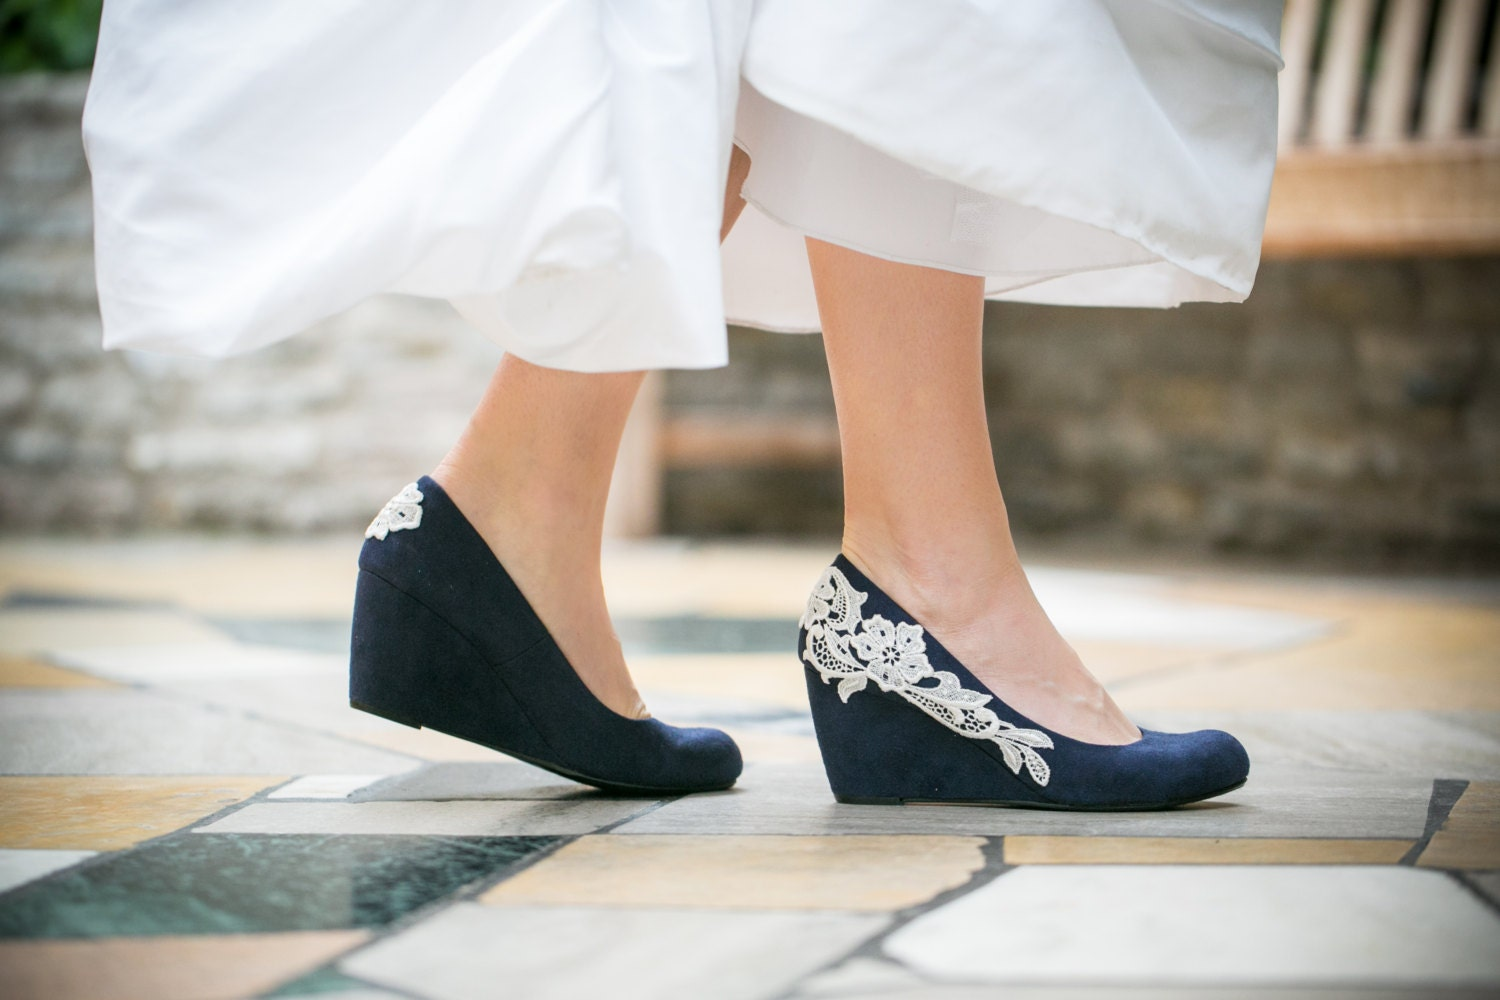 Wedding shoesnavy blue wedgesbridal heelnavy wedgeblue zoom junglespirit Choice Image